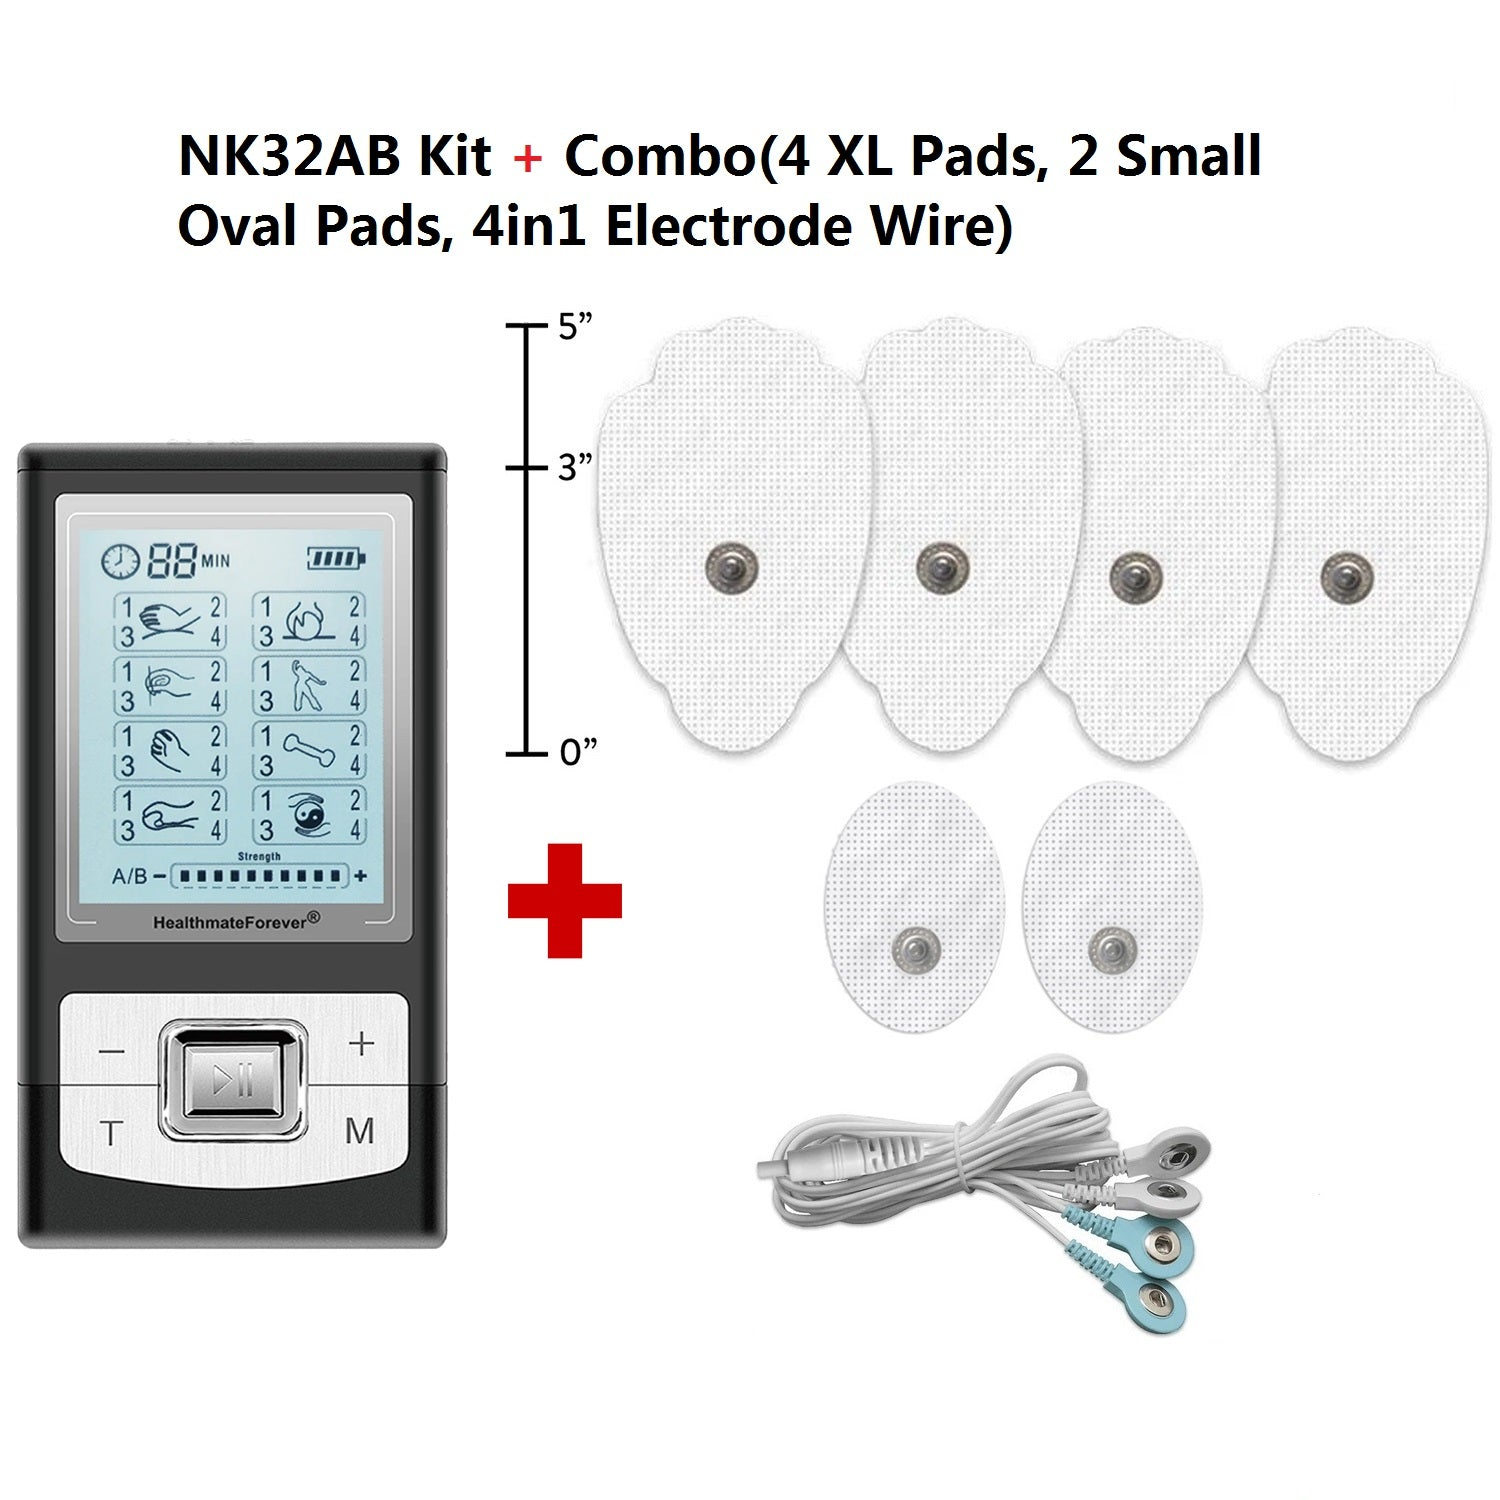 New Arrival - 2020 Version 32 Modes NK32AB TENS Unit & Muscle Stimulator - 2 Year Warranty - HealthmateForever